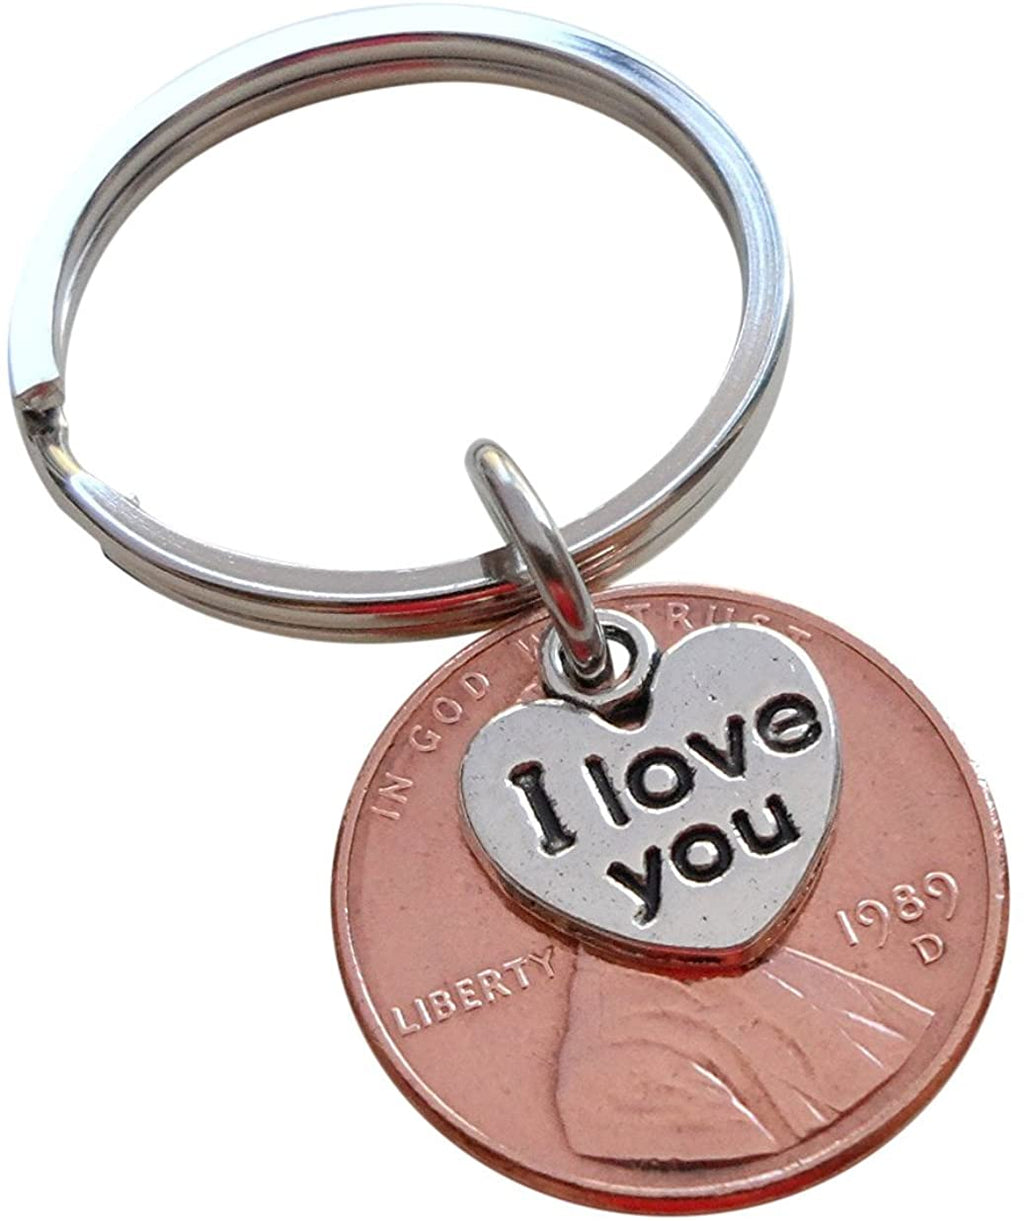 I Love You Heart Charm Layered Over 1989 Penny Keychain; 31 Year Anniversary Gift, Couples Keychain